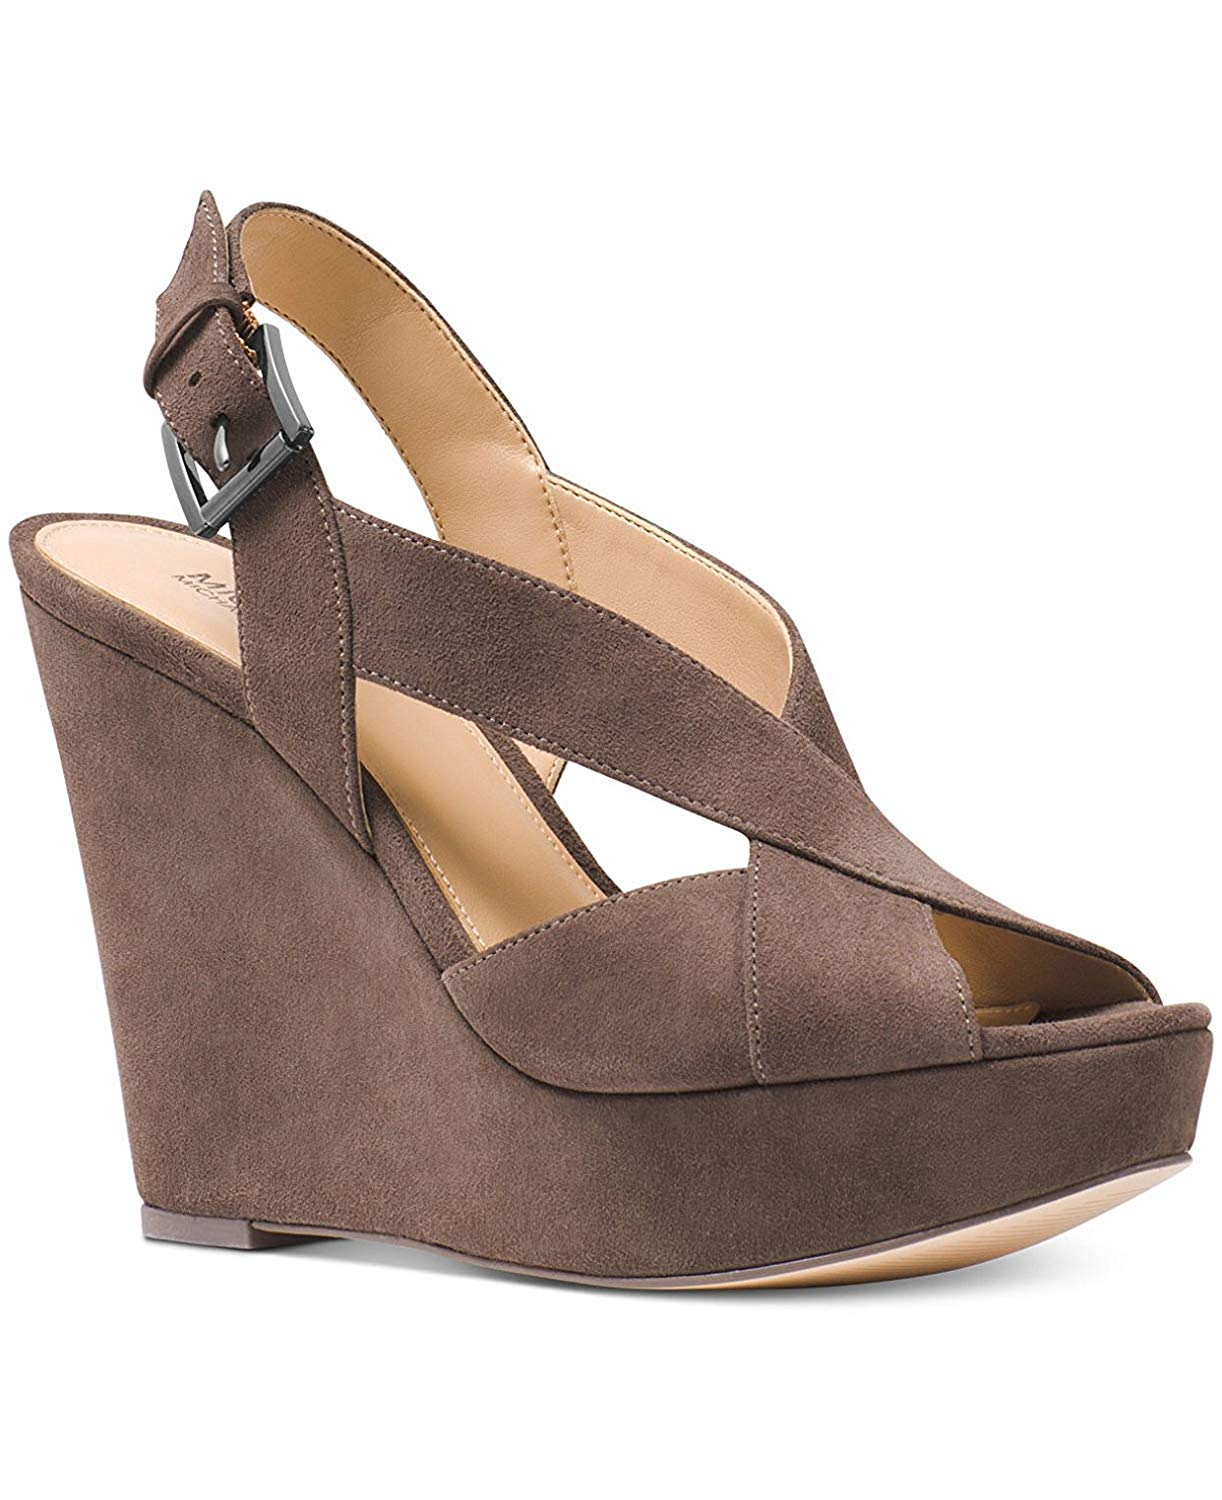 3ae924479a6 Michael Michael Kors Womens Becky Wedge Open Toe Casual Ankle Strap Sandals